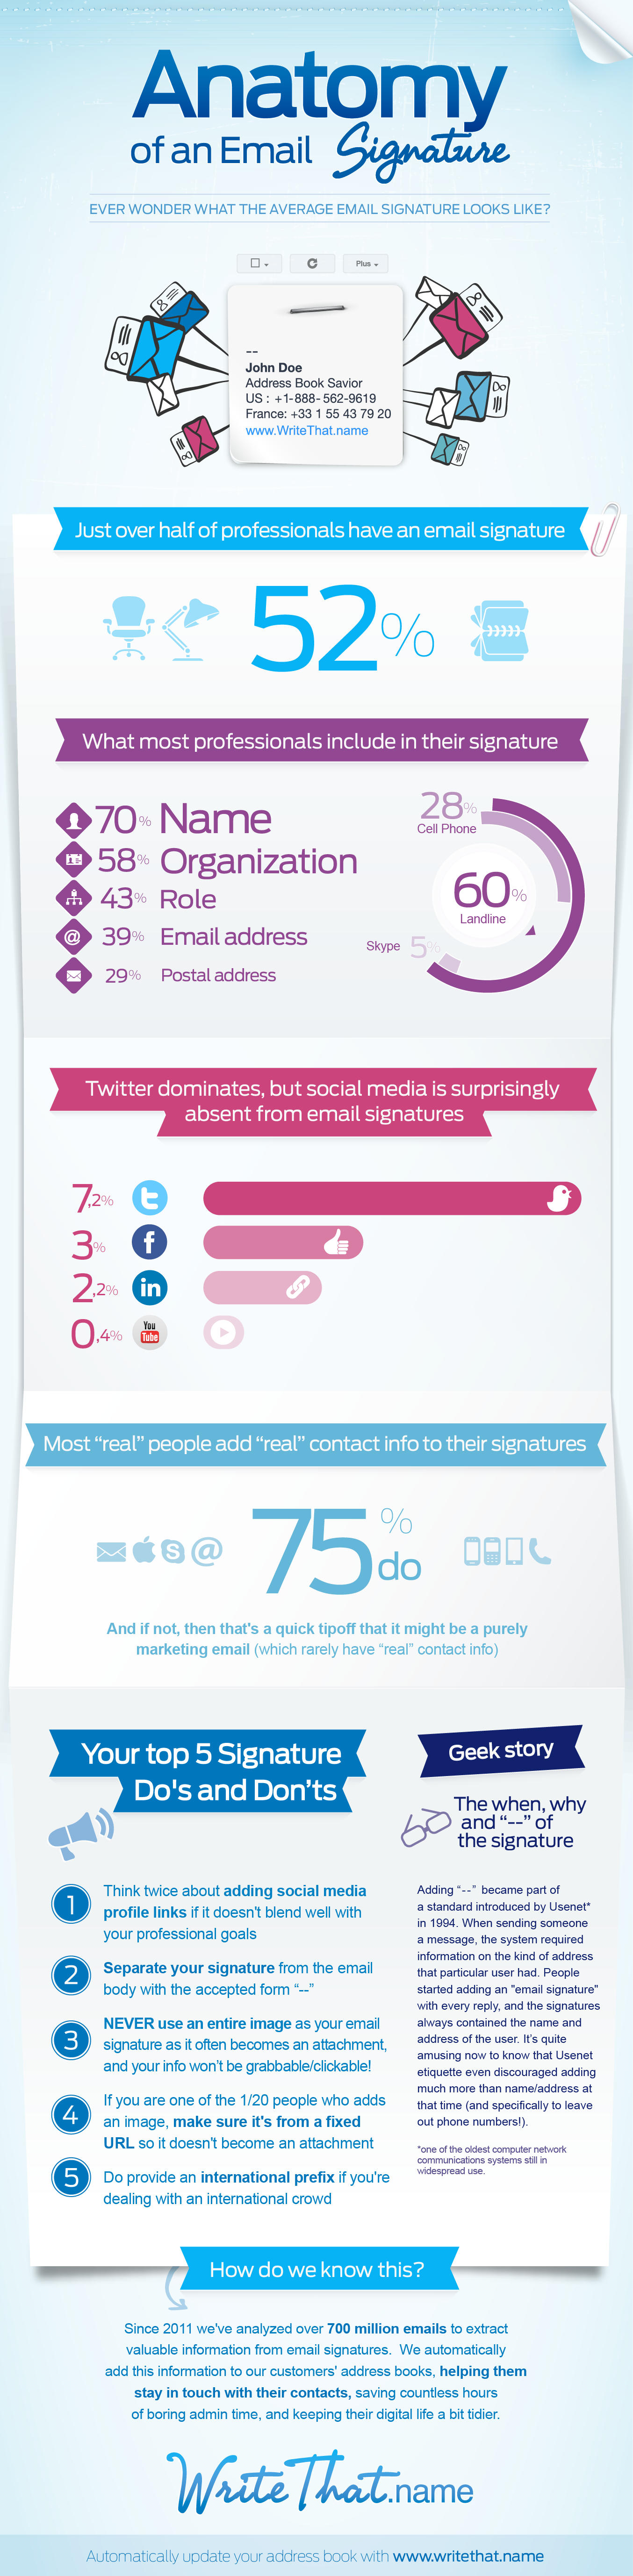 Email Signatures Infographic